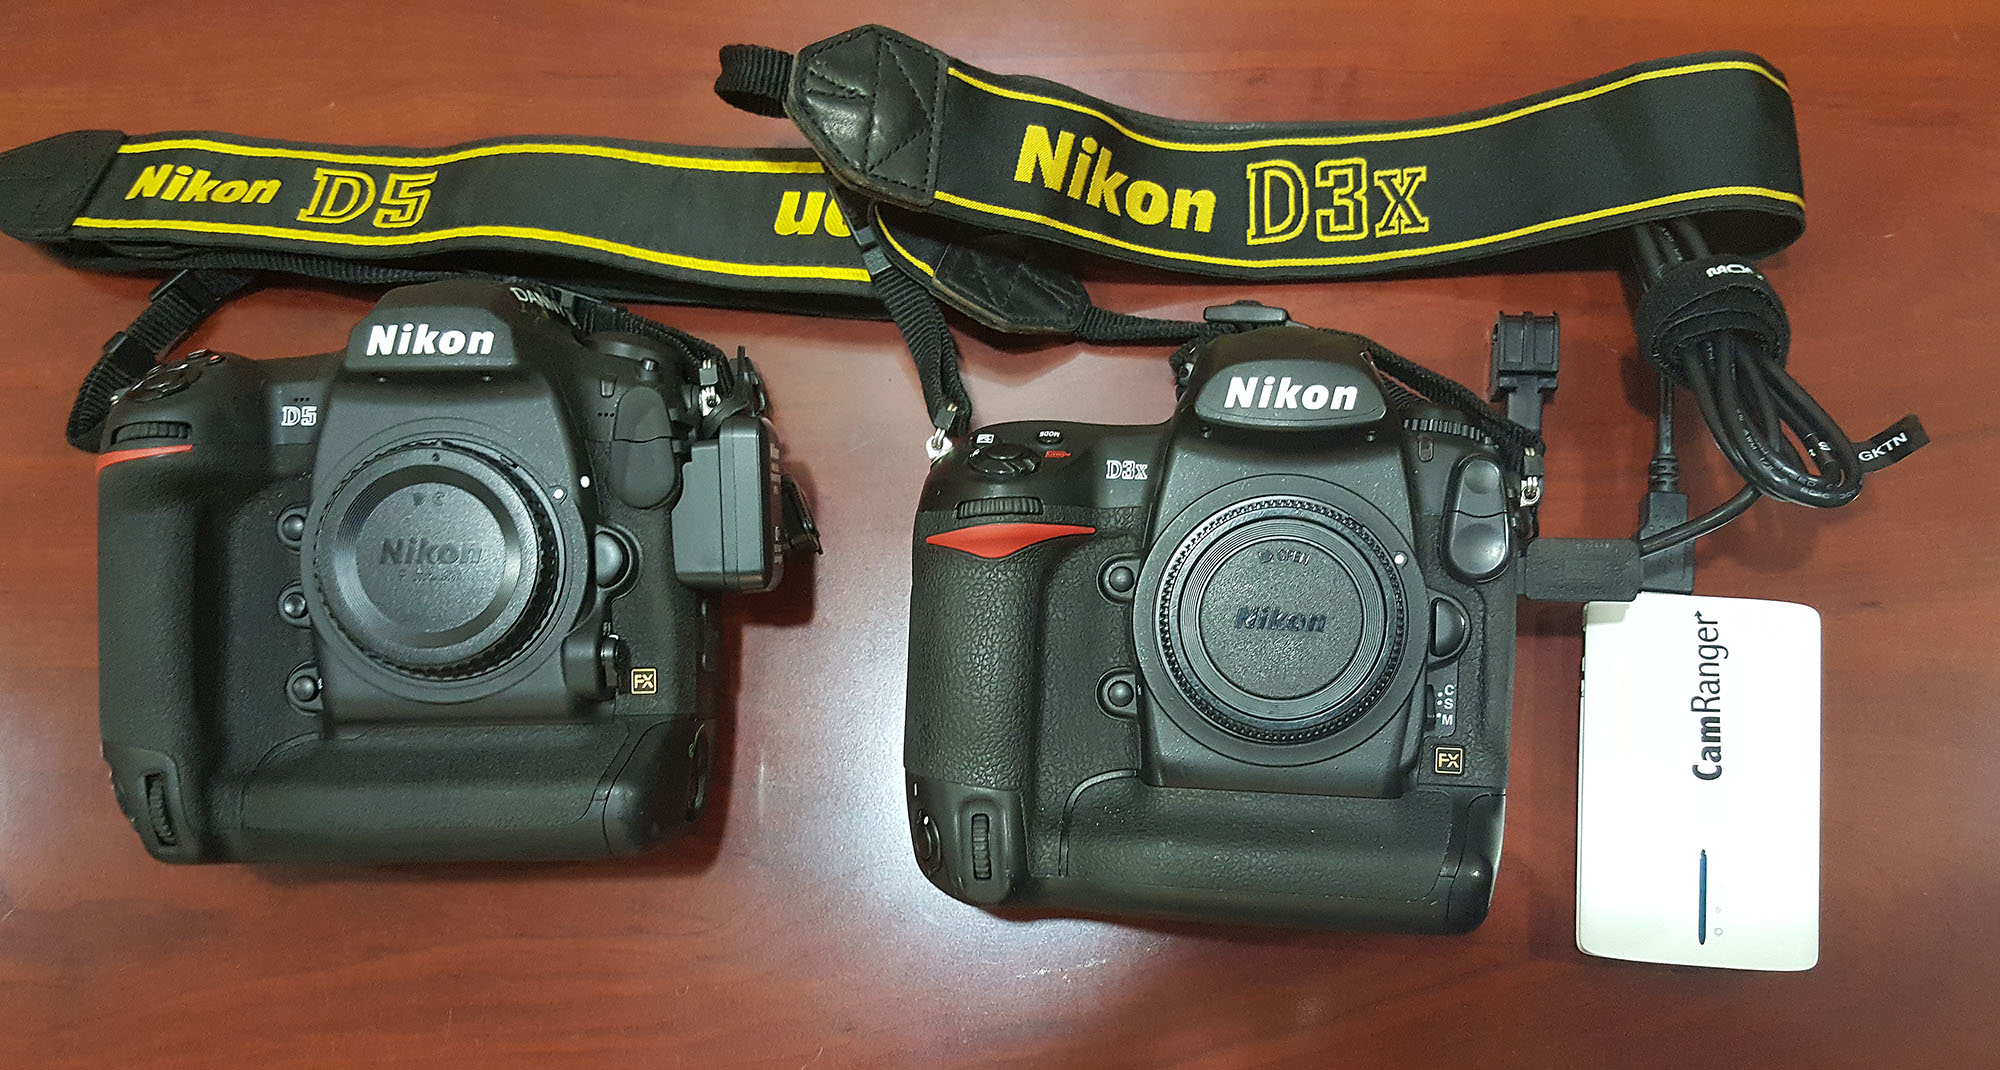 Previewing of Images on Tablets using Wireless Transmitters. Nikin D5 with Nikon WT-6A vs Nikon D3x with CamRanger